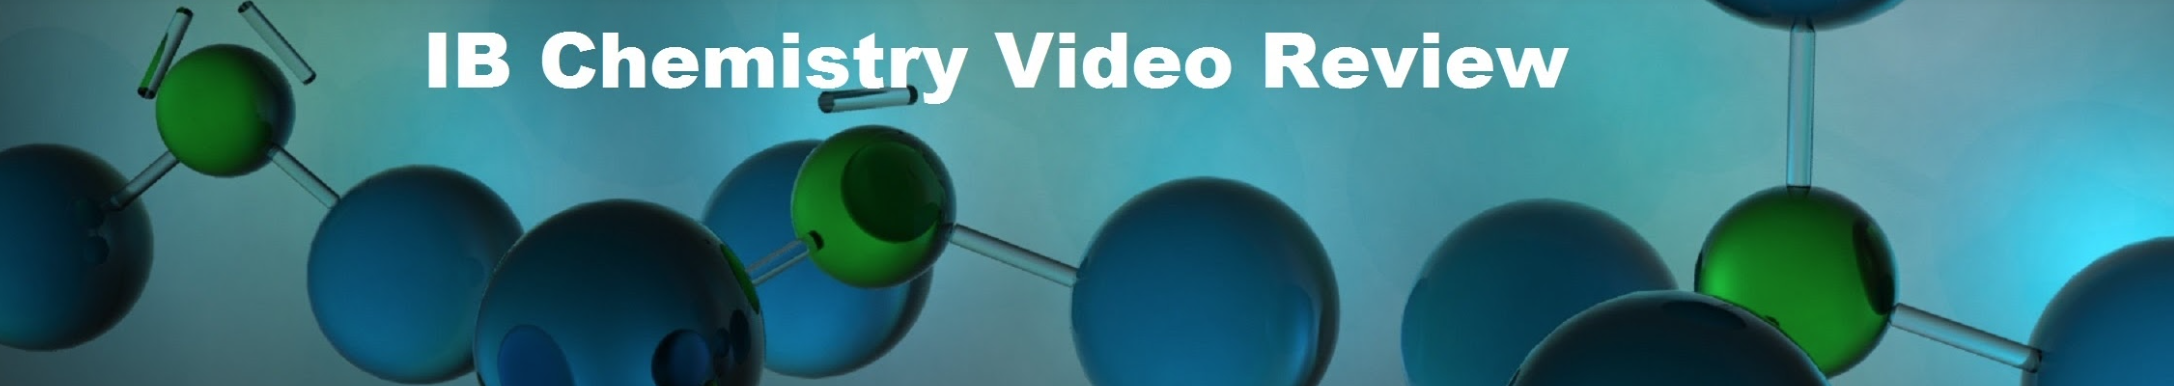 IB Chemistry Video Review